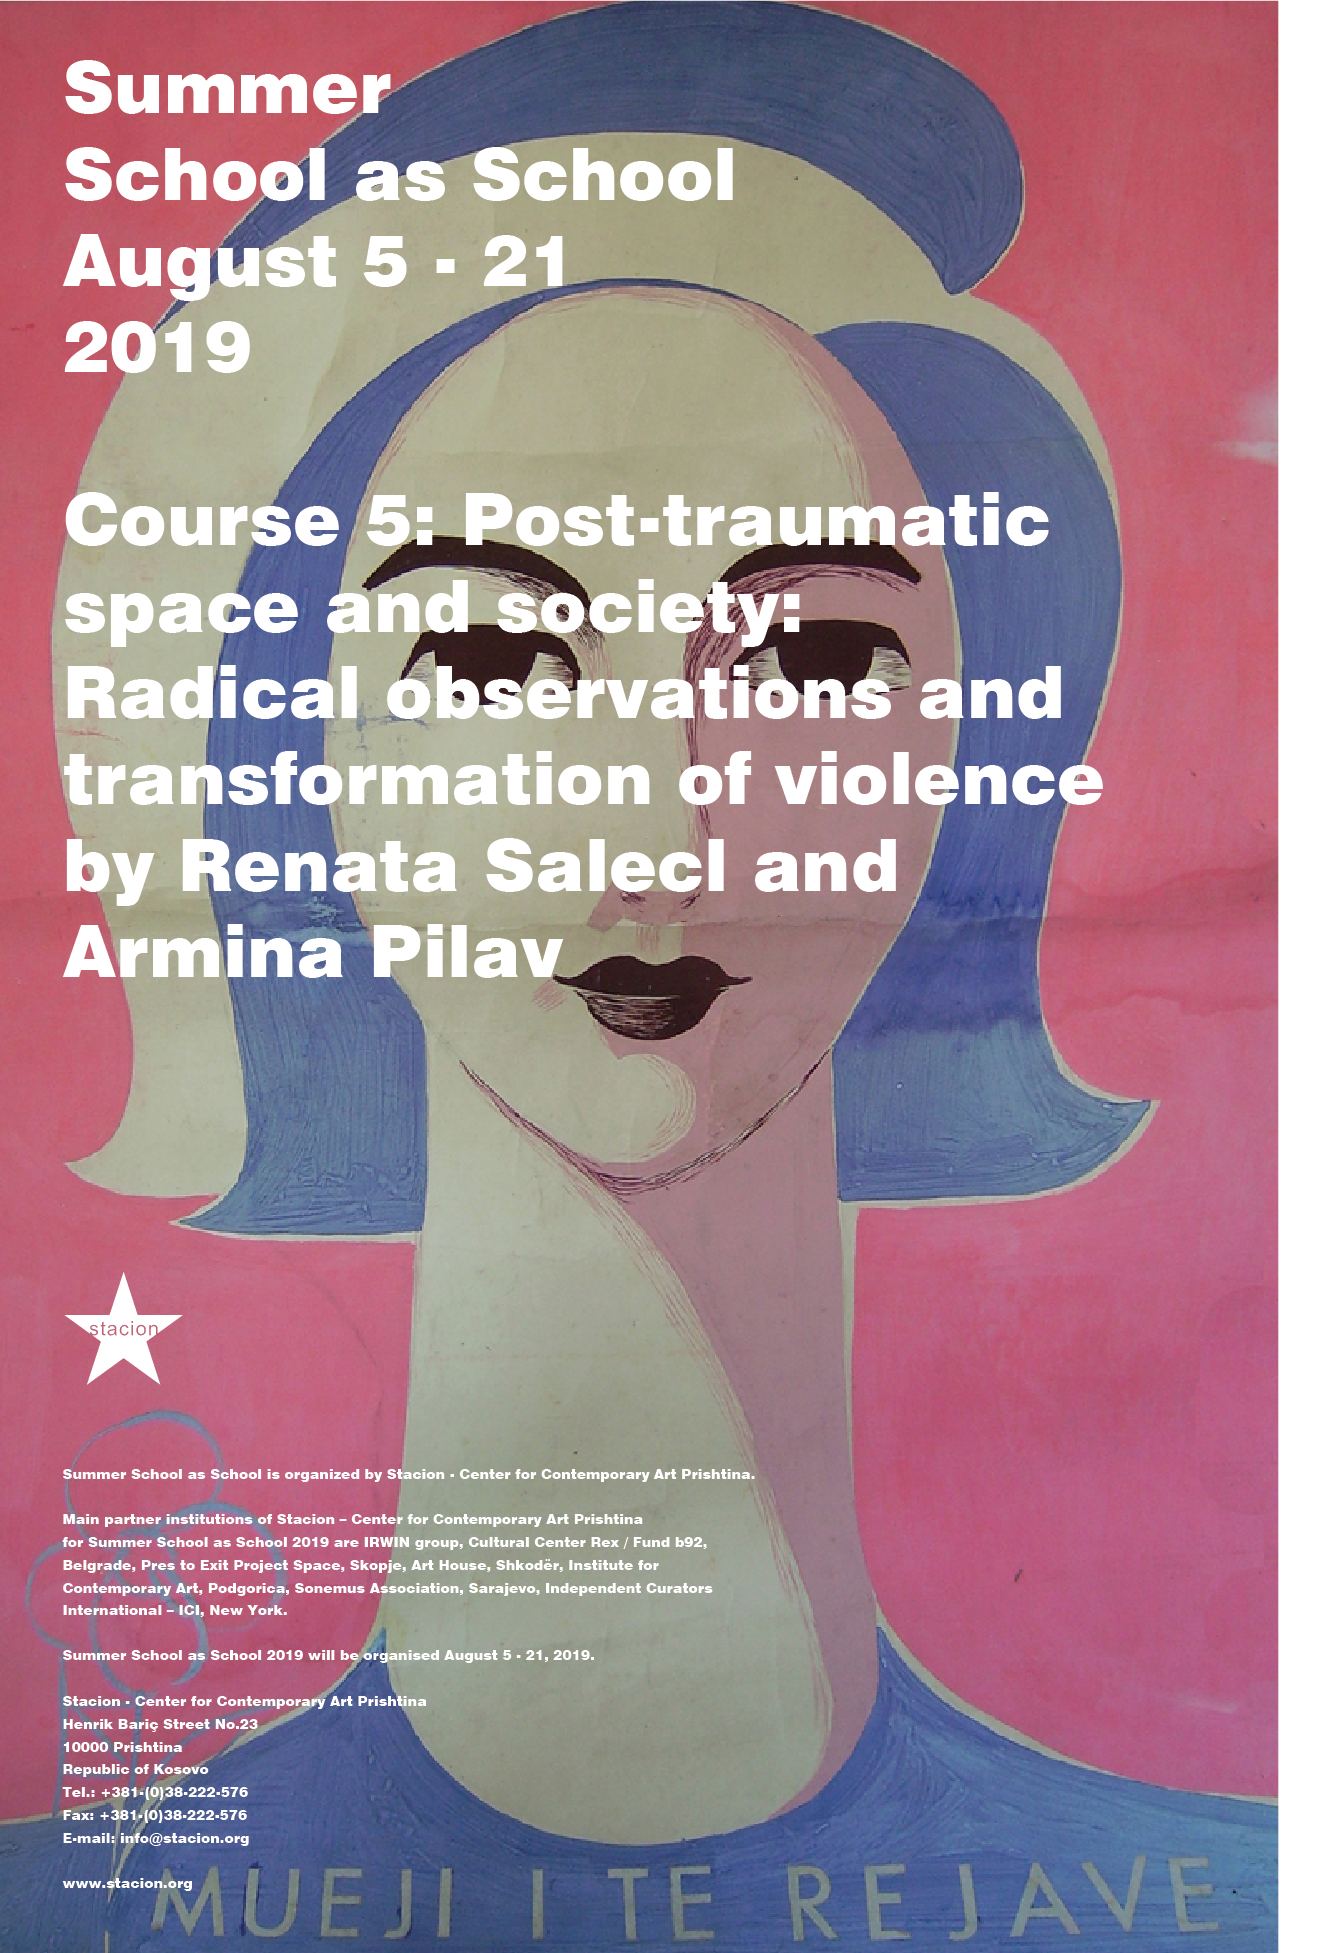 Course 5: Post-traumatic Space and Society: Radical observations and transformation of violence